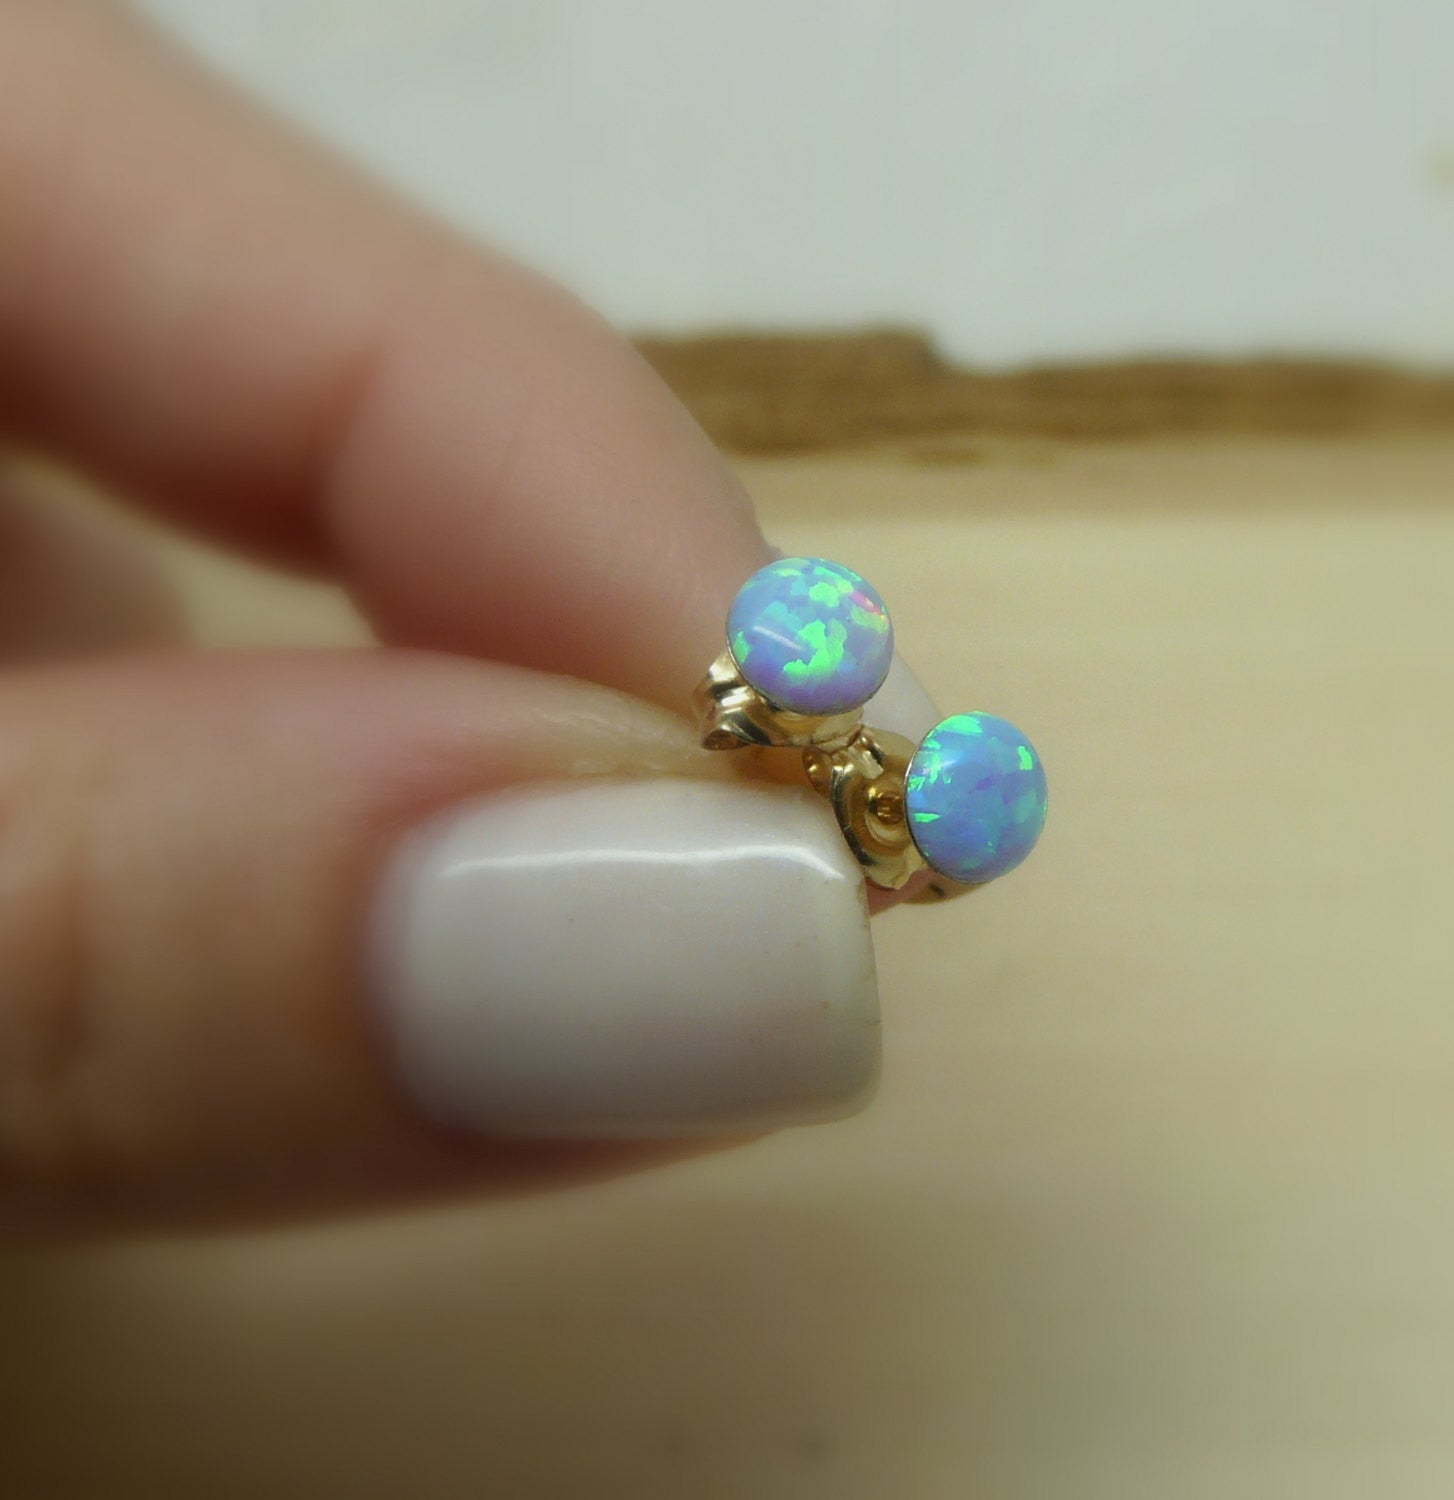 Gold Filled Opal stud earrings - OpaLandJewelry